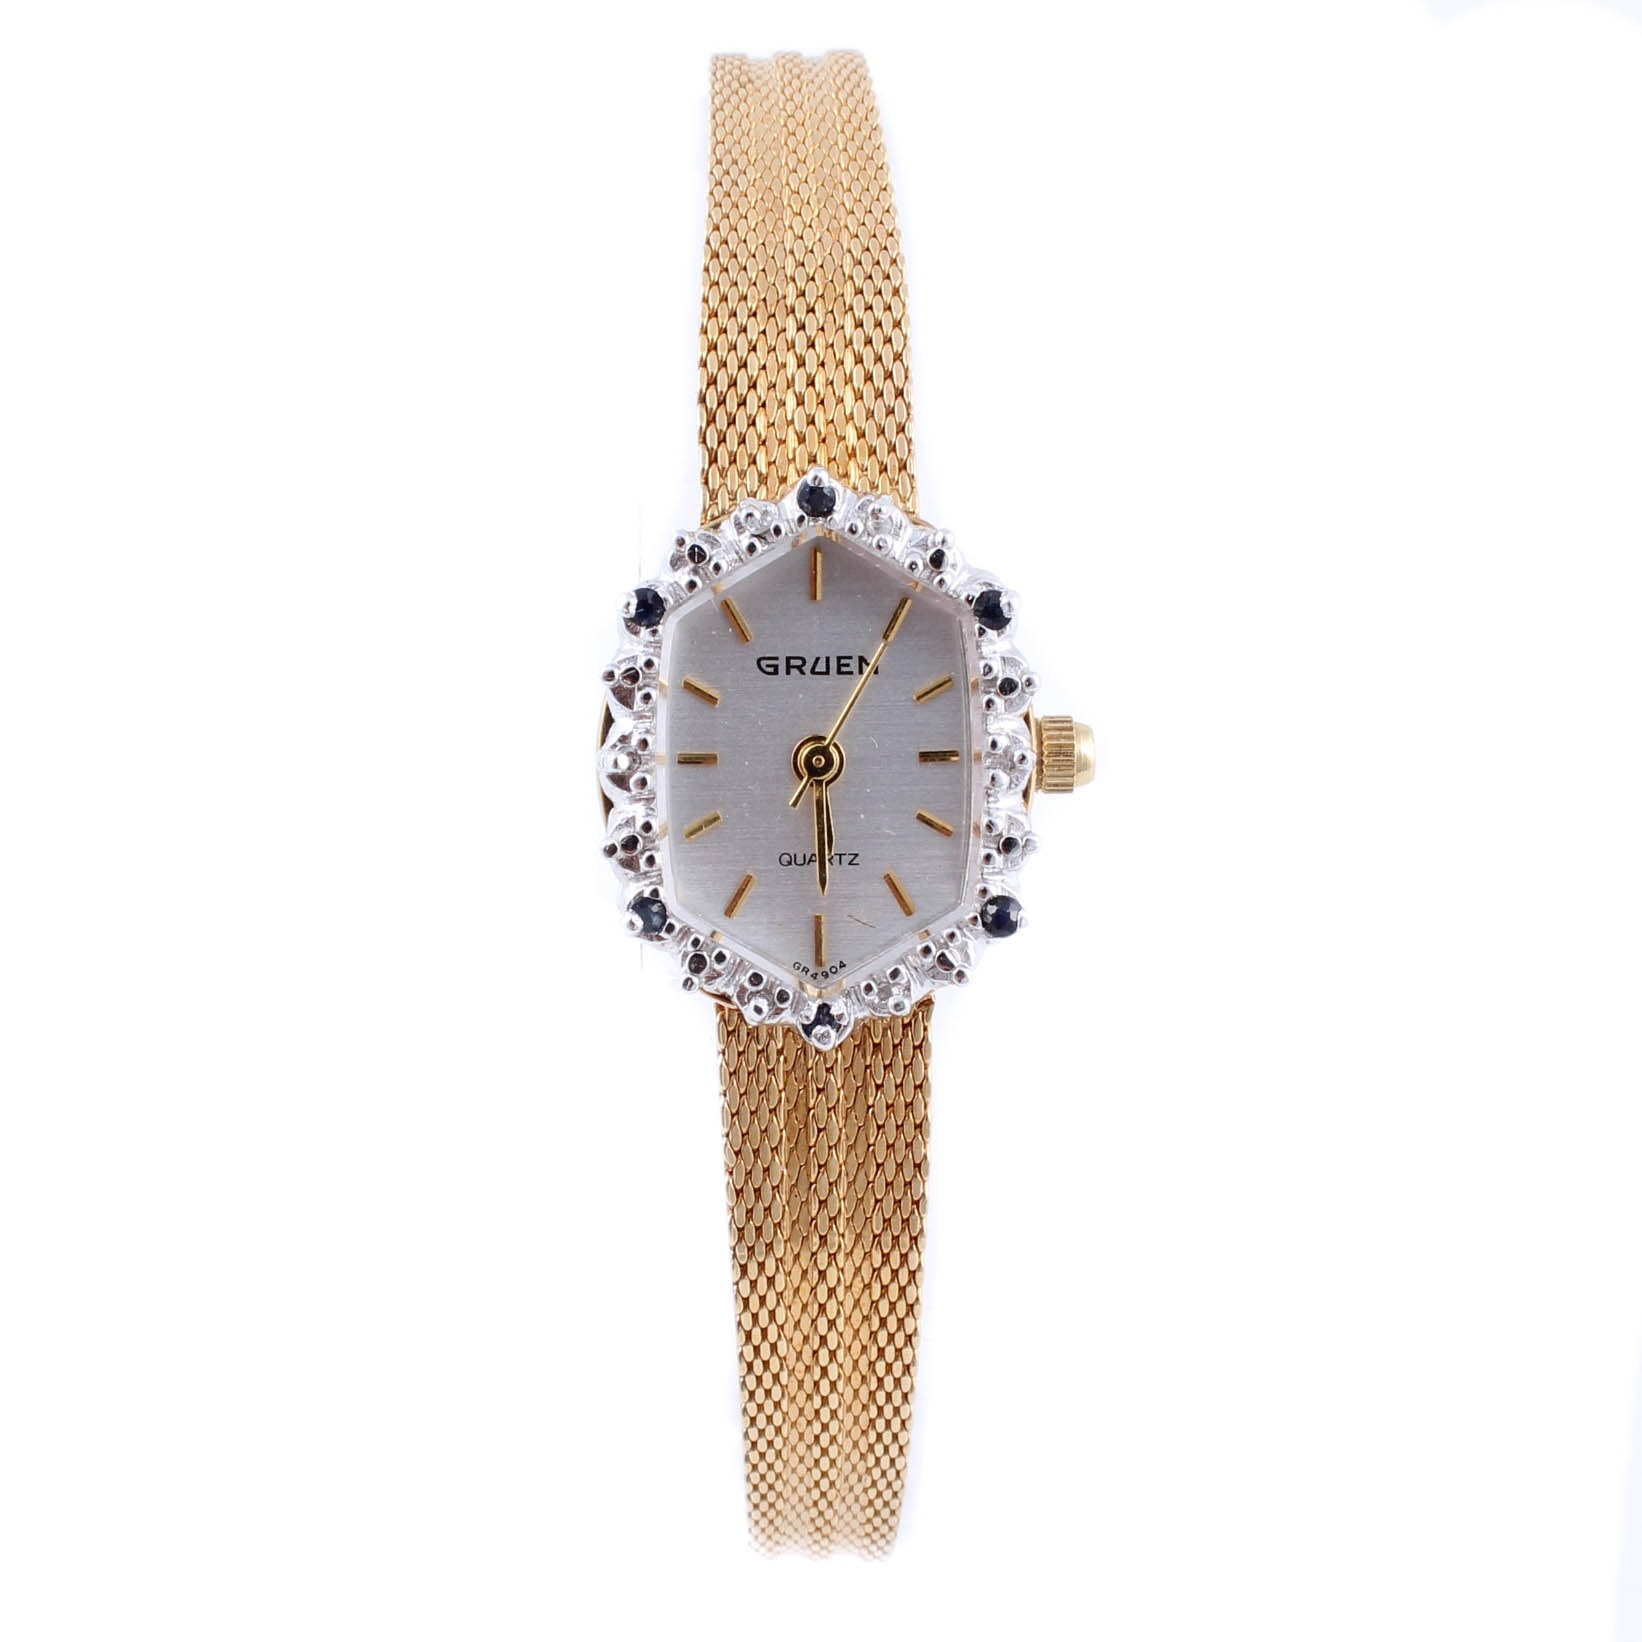 Gruen Ladies Gold Tone Wristwatch with Diamonds